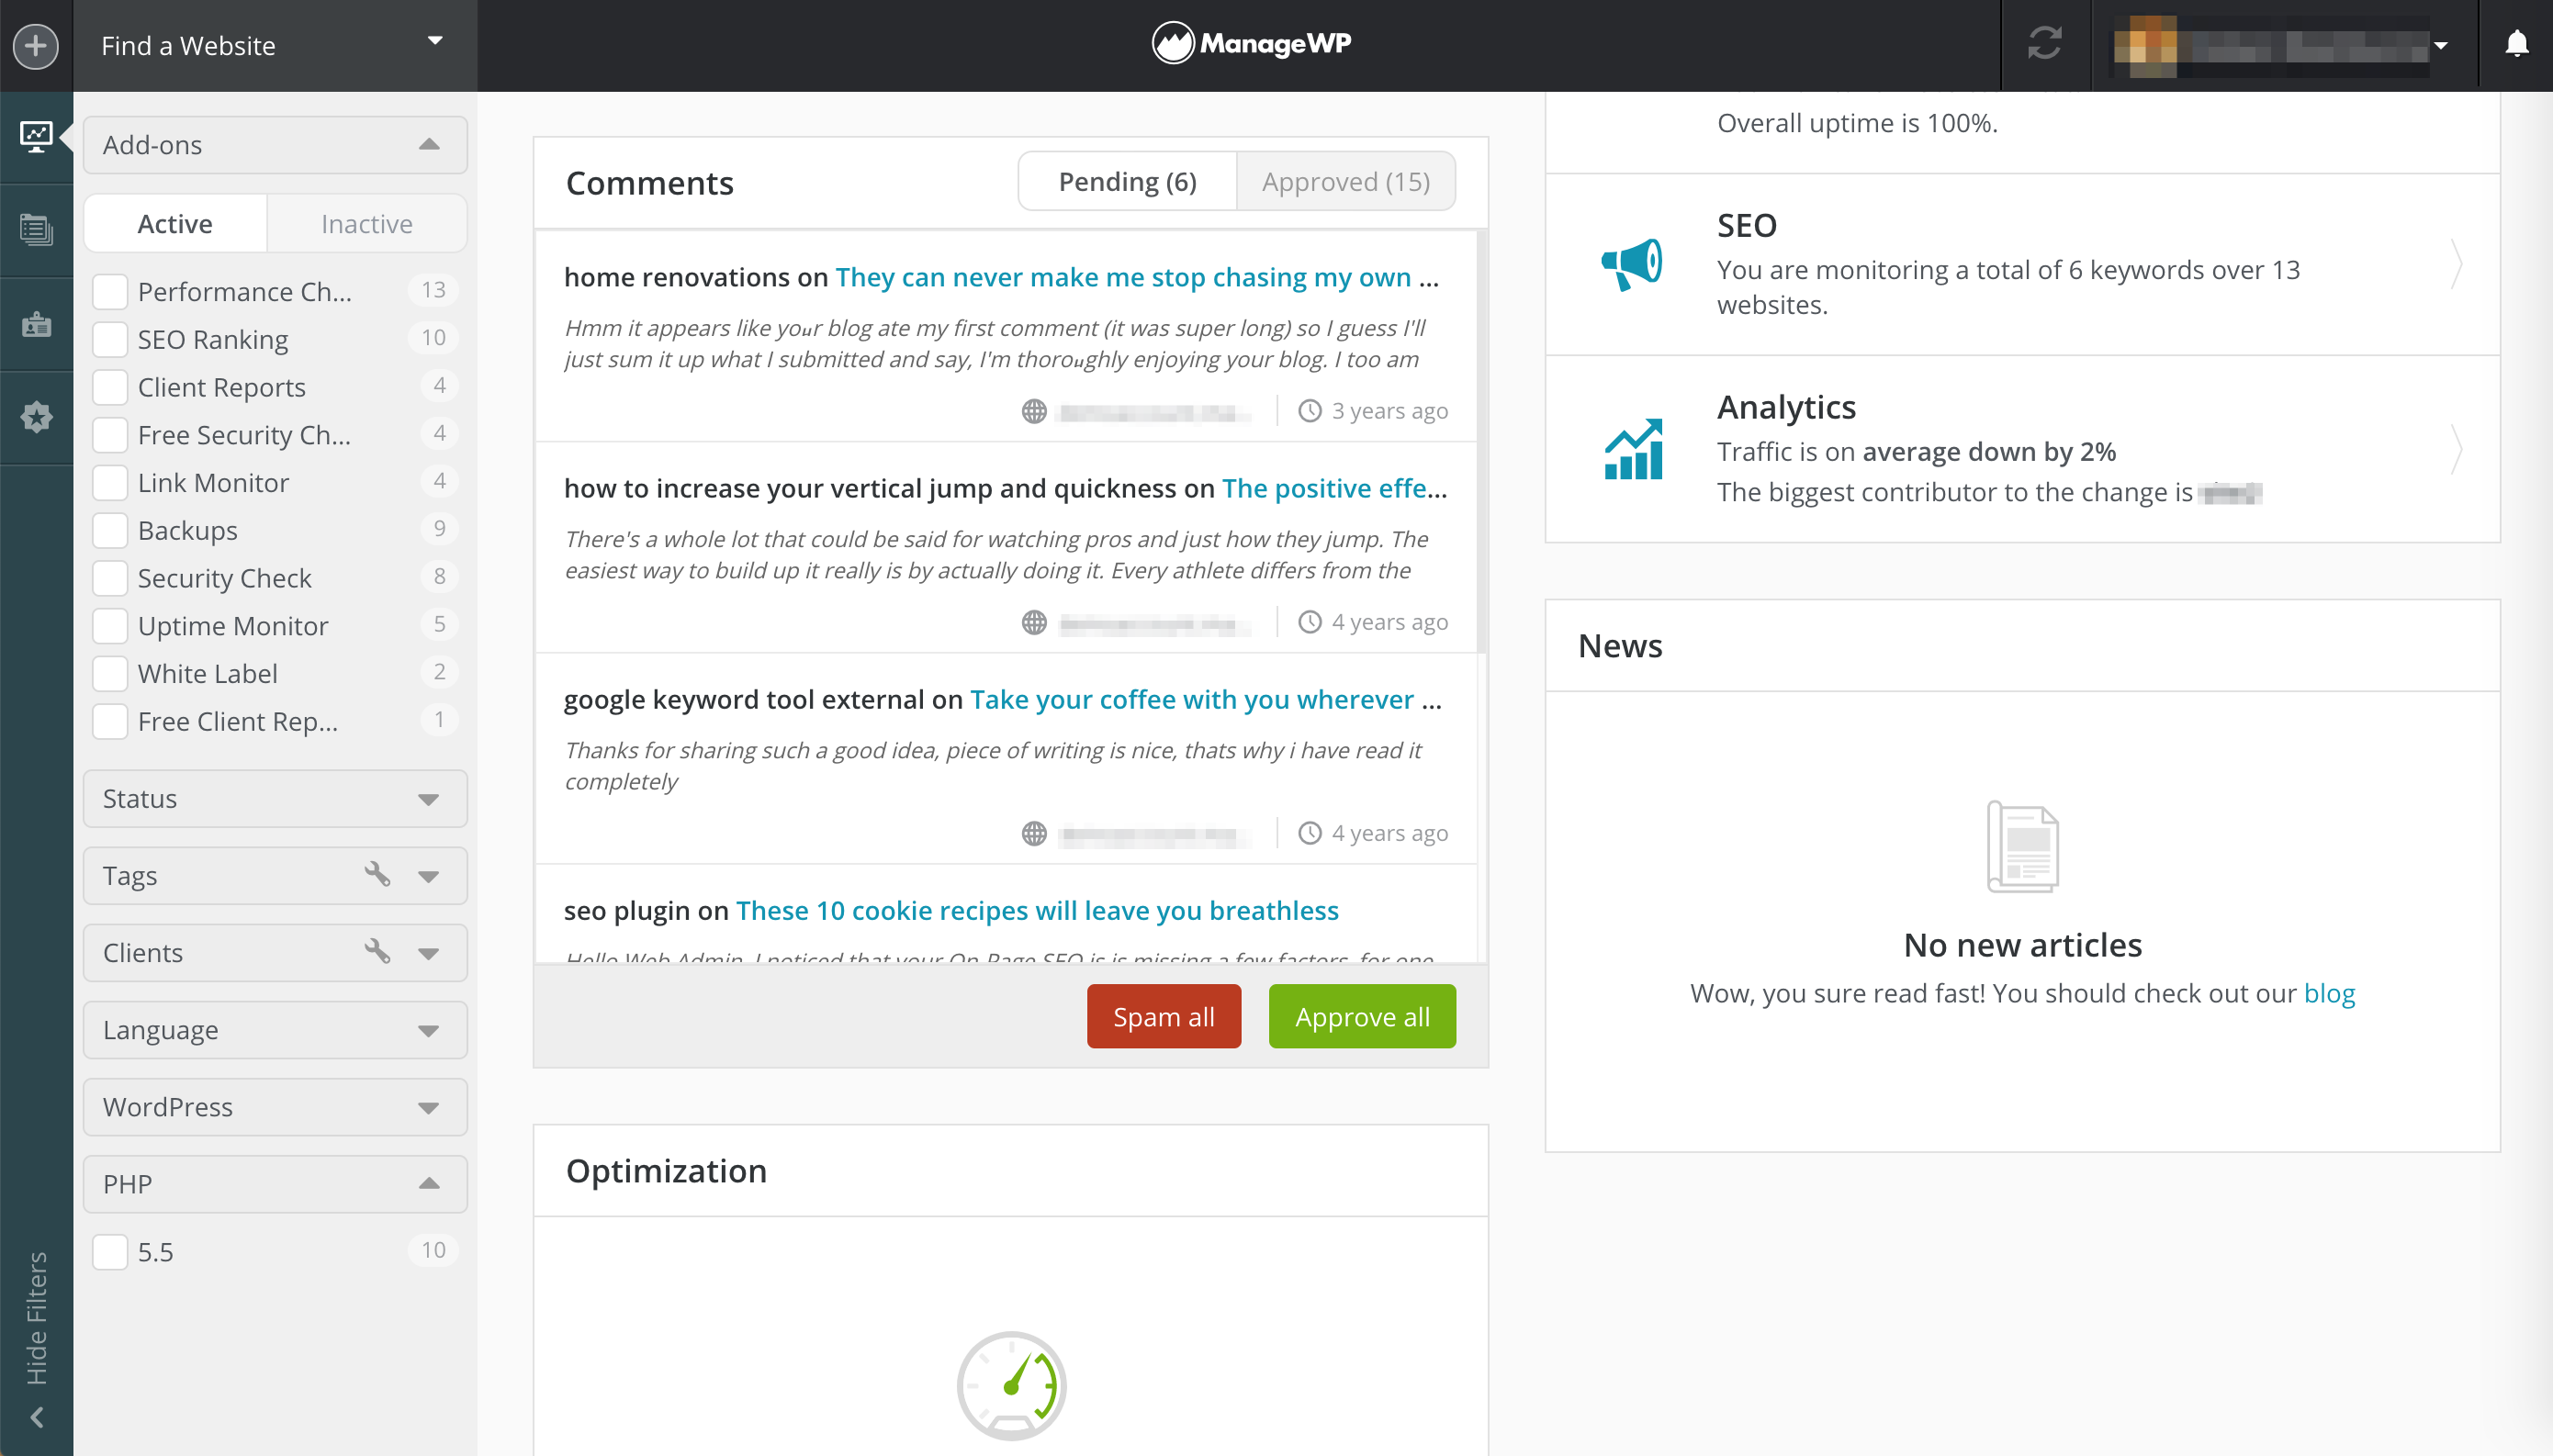 The ManageWP comment manager.